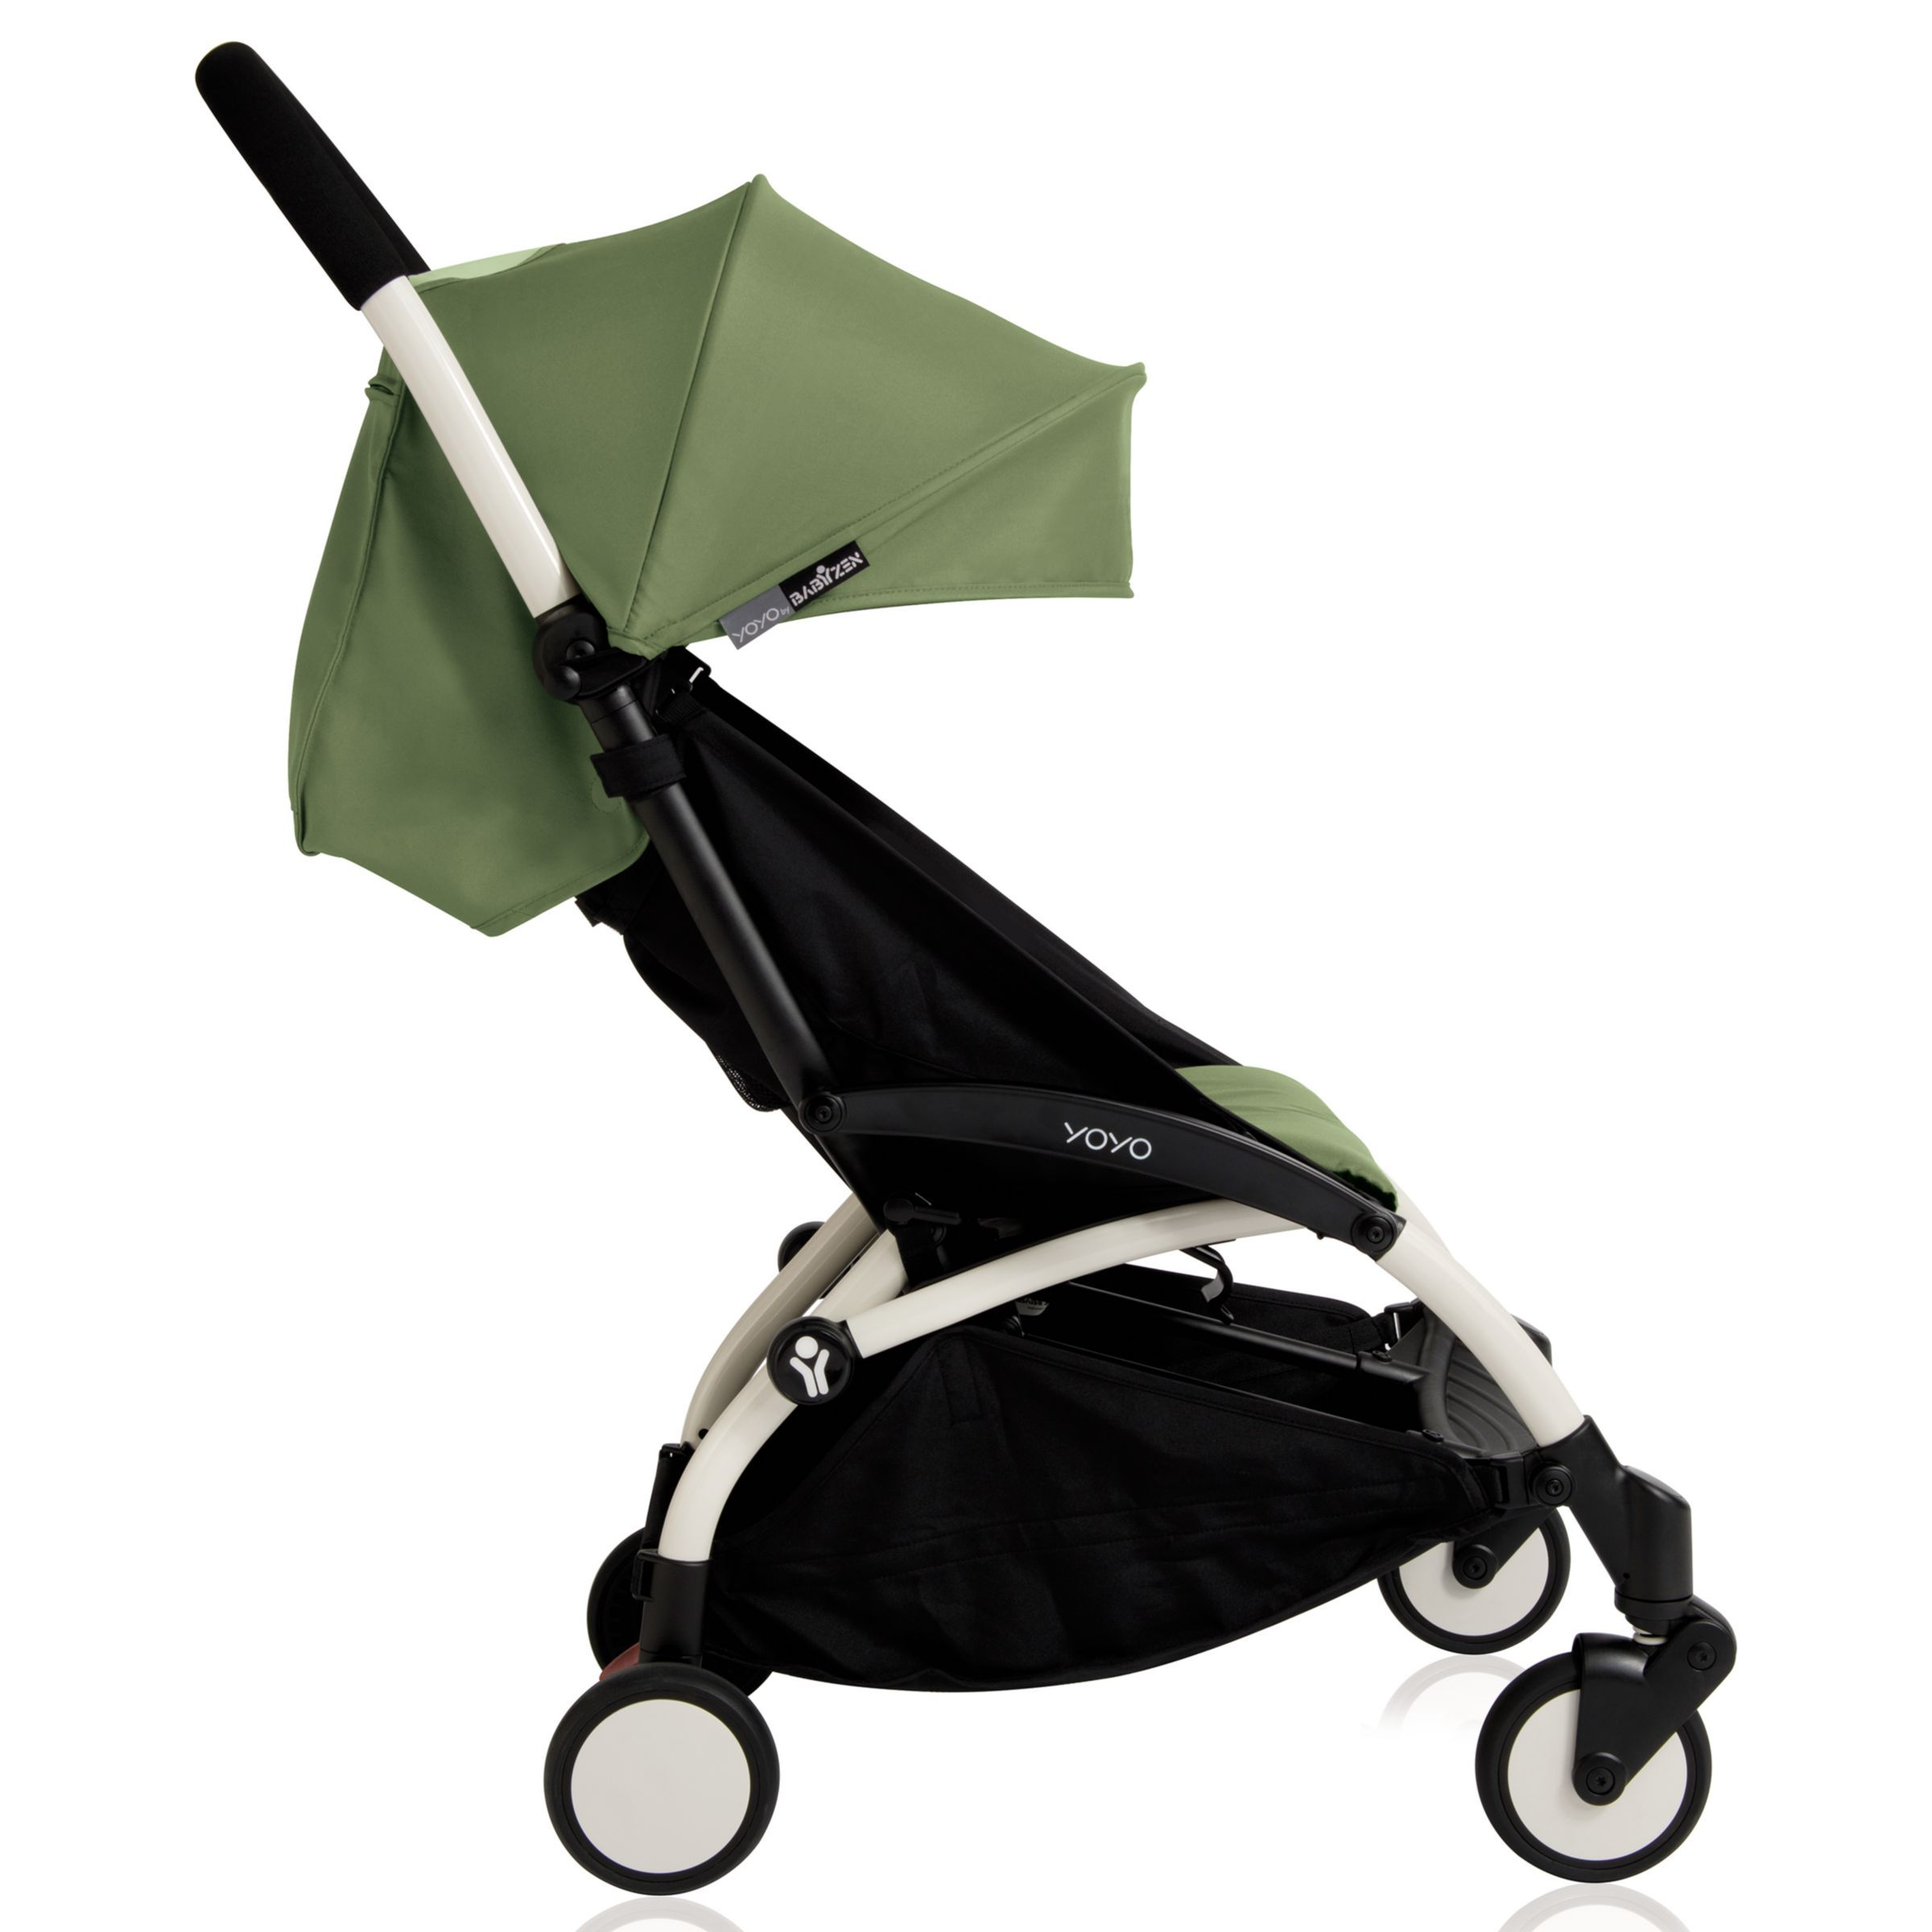 BABYZEN YOYO+ Pushchair, White/Peppermint Urban stroller